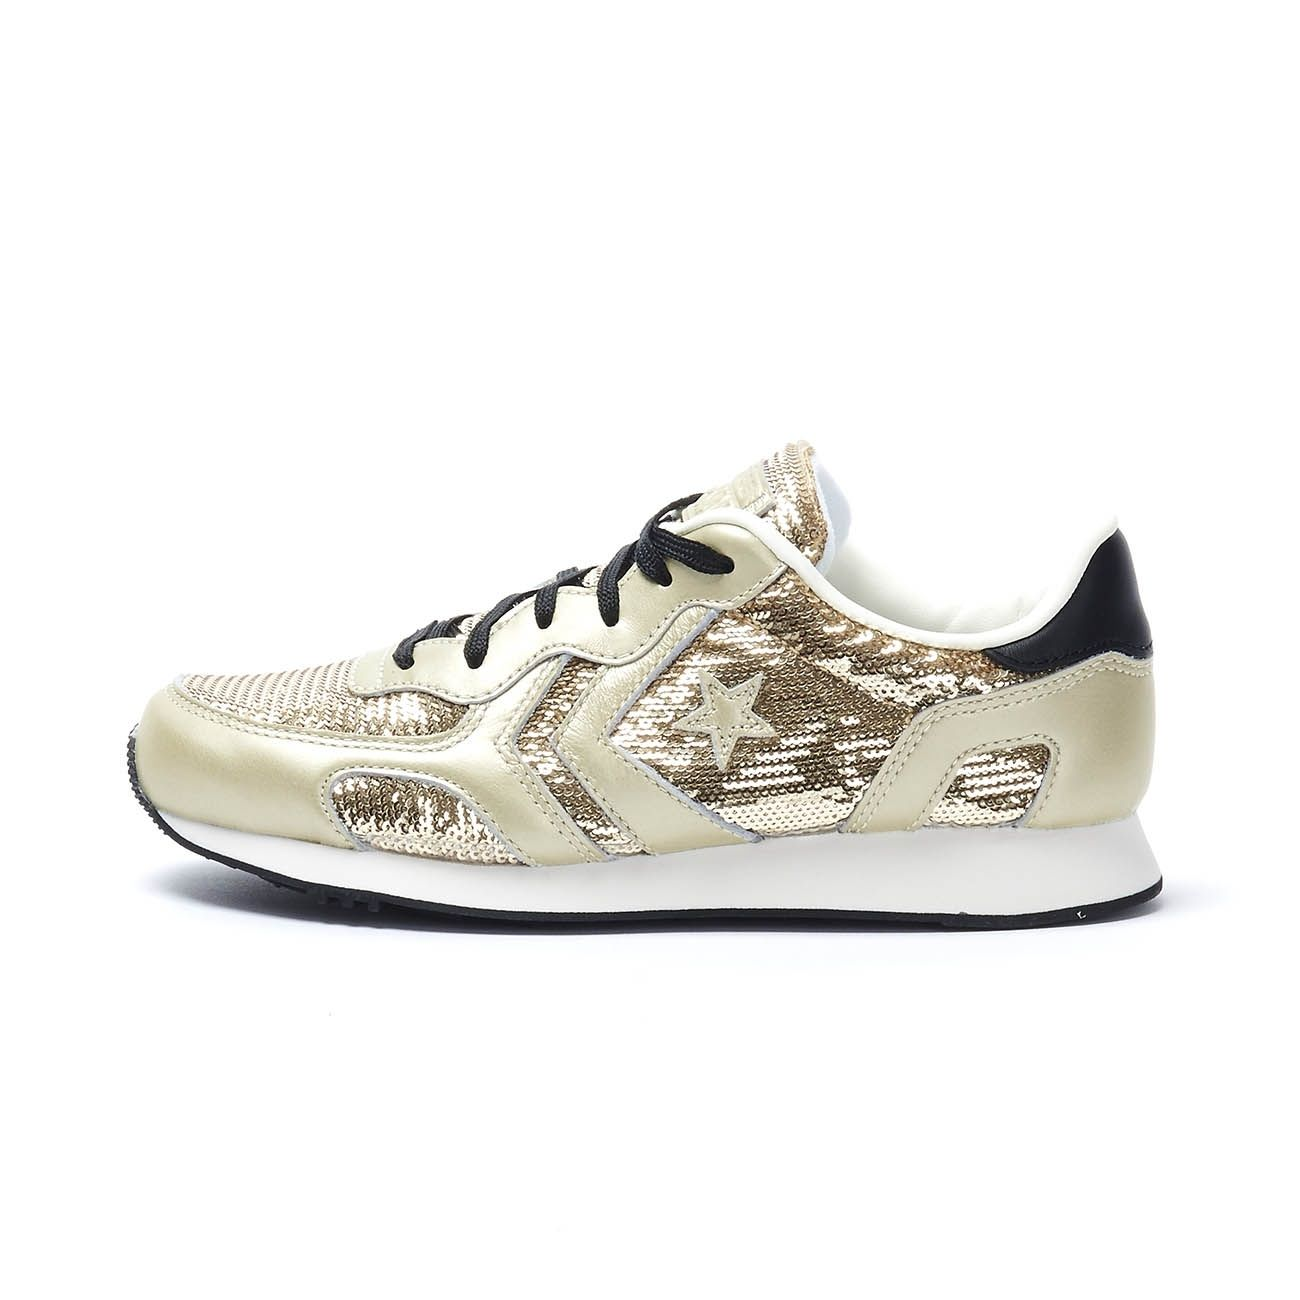 CONVERSE AUCKLAND RACER OX SEQUINS SNEAKERS Woman Light gold White ...